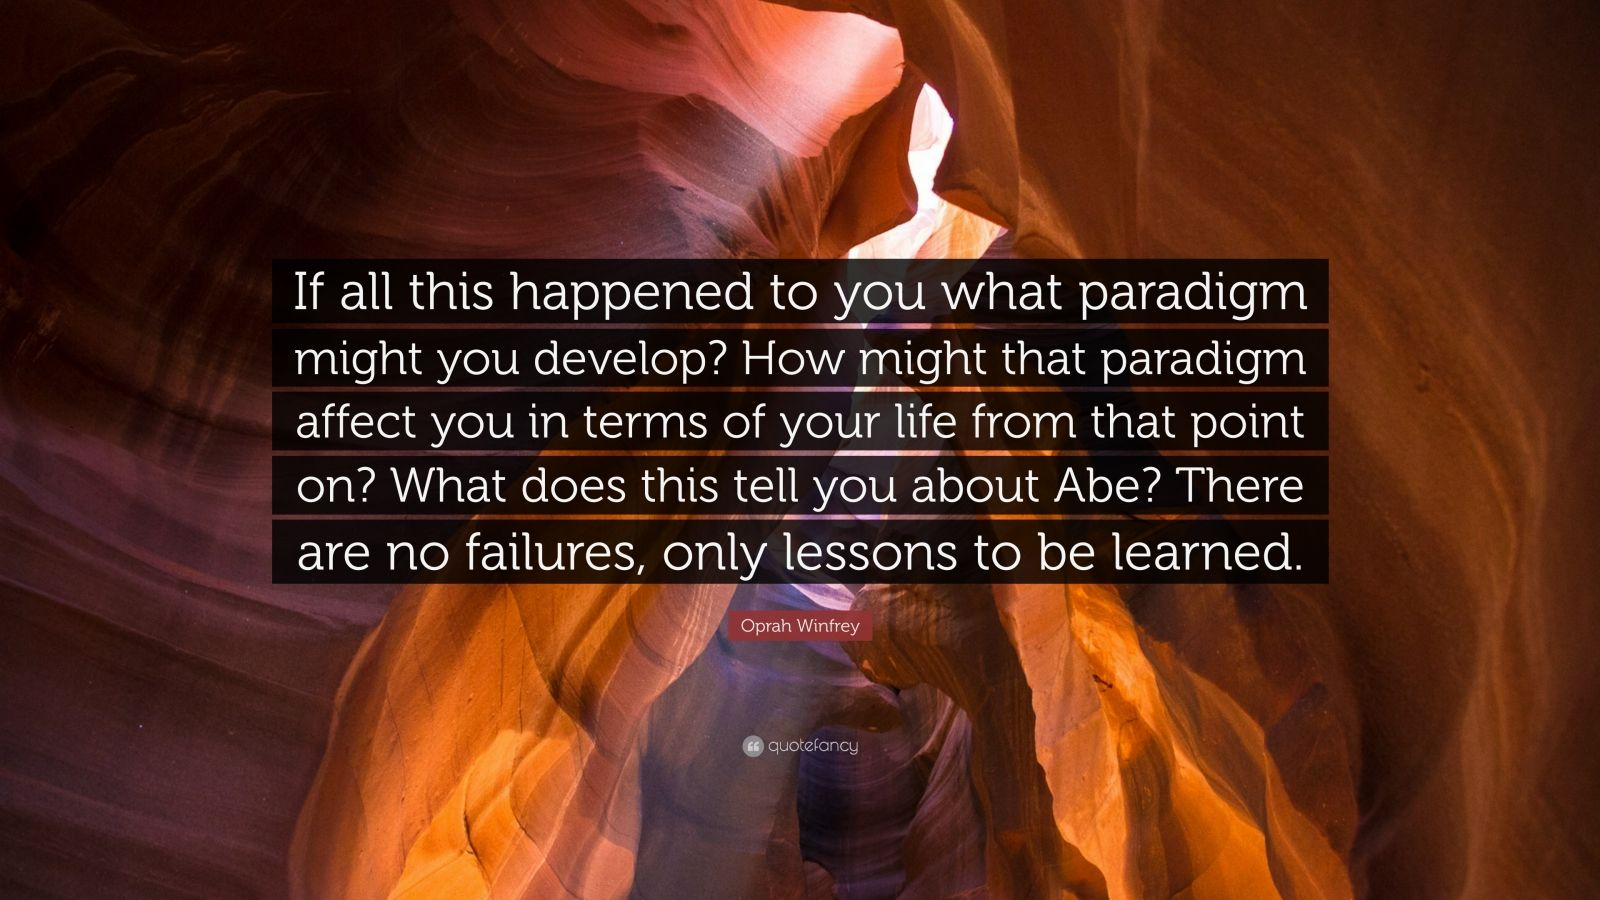 """Oprah Winfrey Quote: """"If all this happened to you what paradigm might you develop? How might that paradigm affect you in terms of your life from that point on? What does this tell you about Abe? There are no failures, only lessons to be learned."""""""